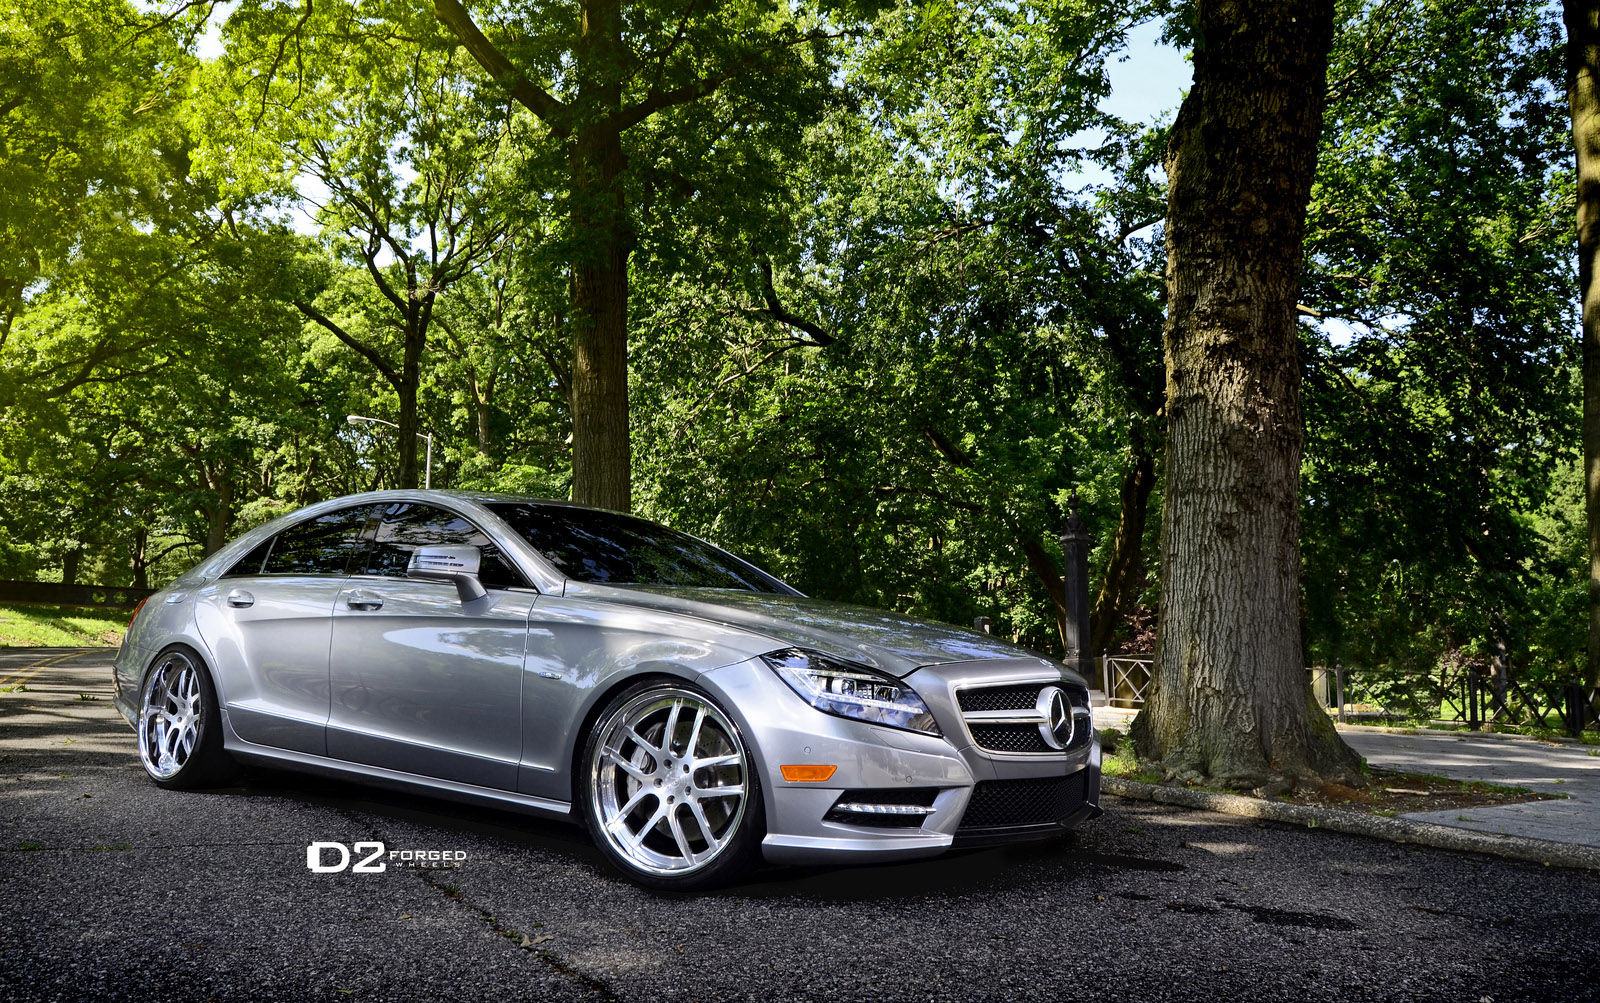 D2forged mercedes benz cls 550 fms08 for Mercedes benz cls for sale